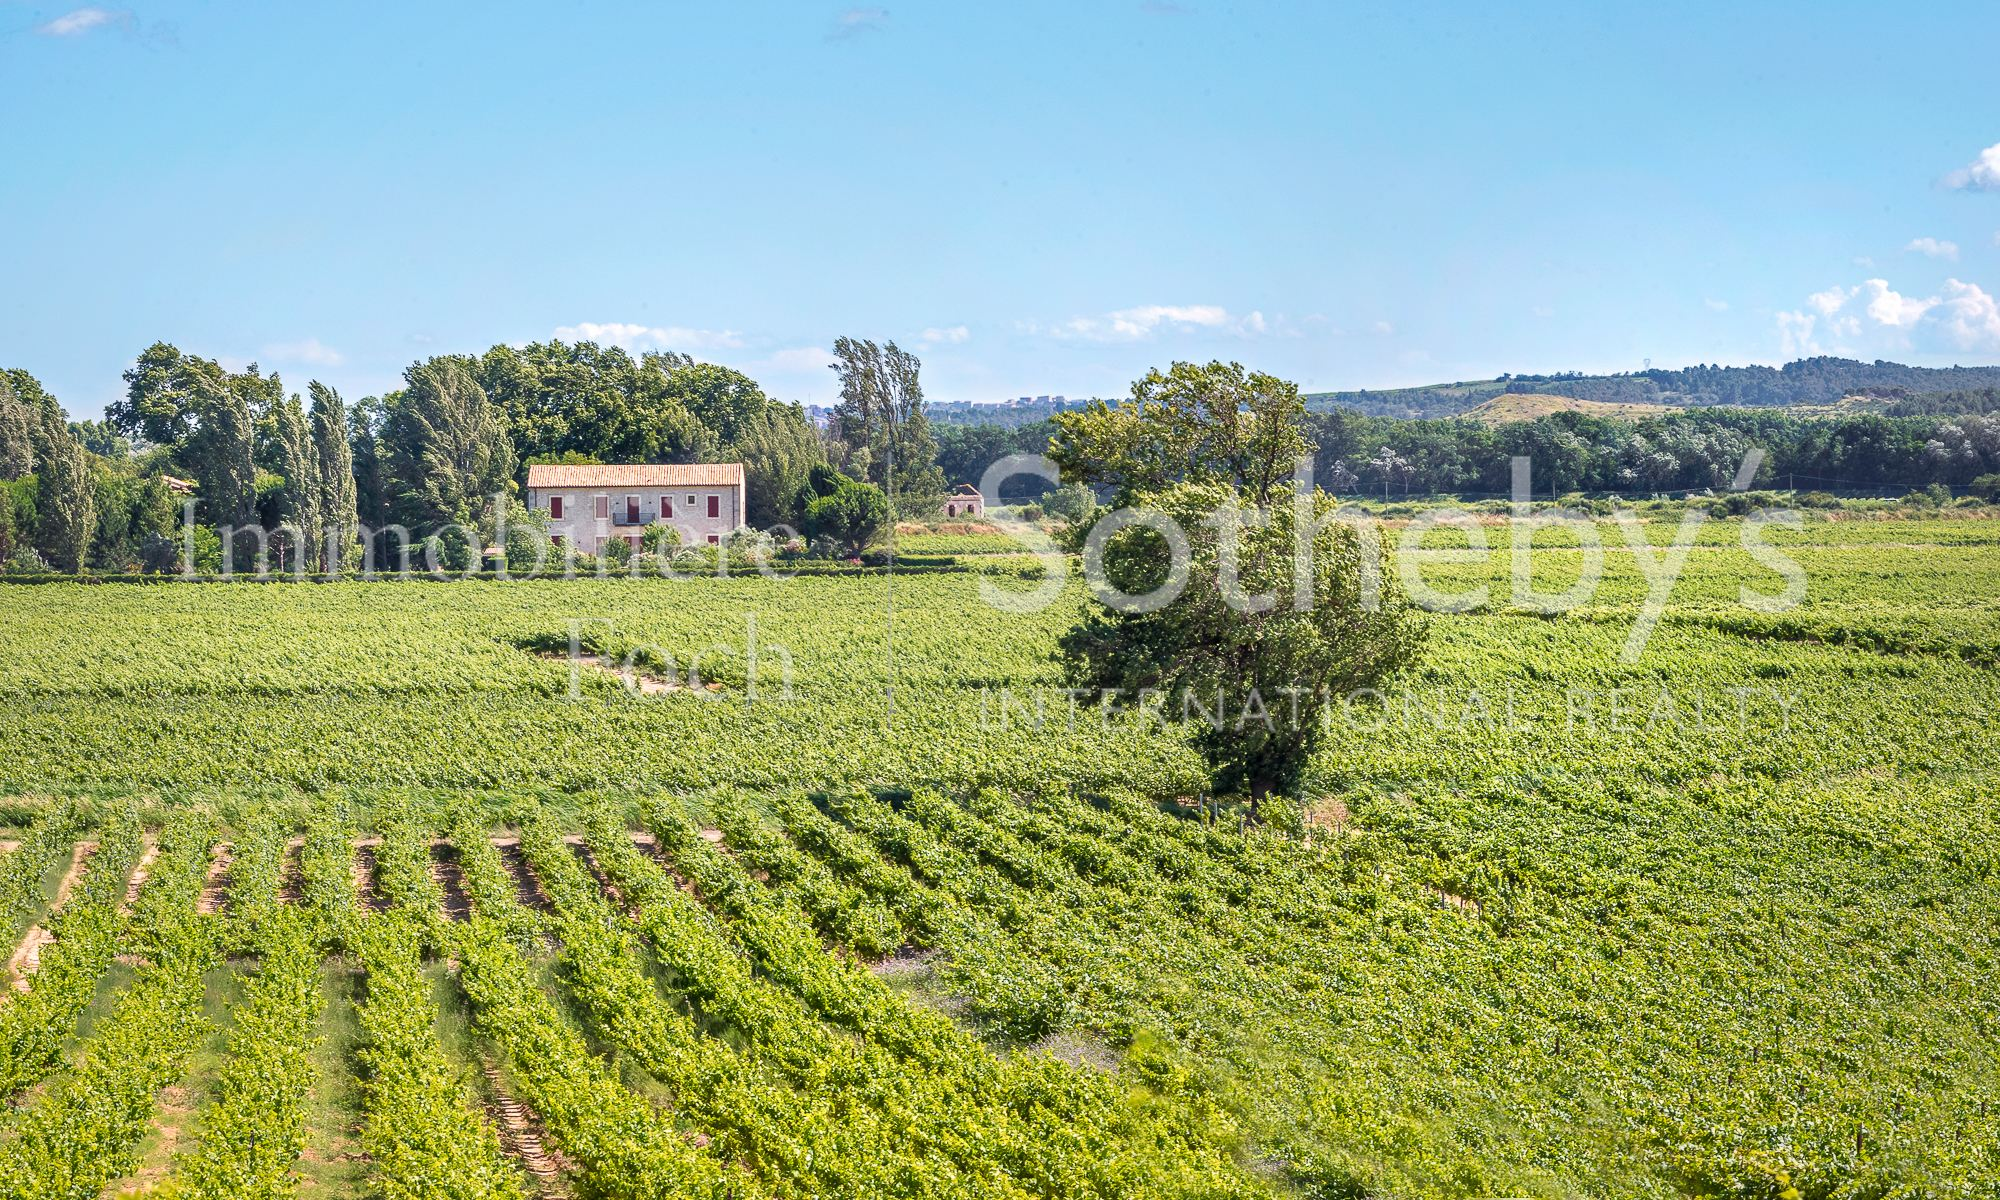 Single Family Home for Sale at AUTHENTIC PROPERTY FROM THE 16TH CENTURY Narbonne, Languedoc-Roussillon, 11100 France